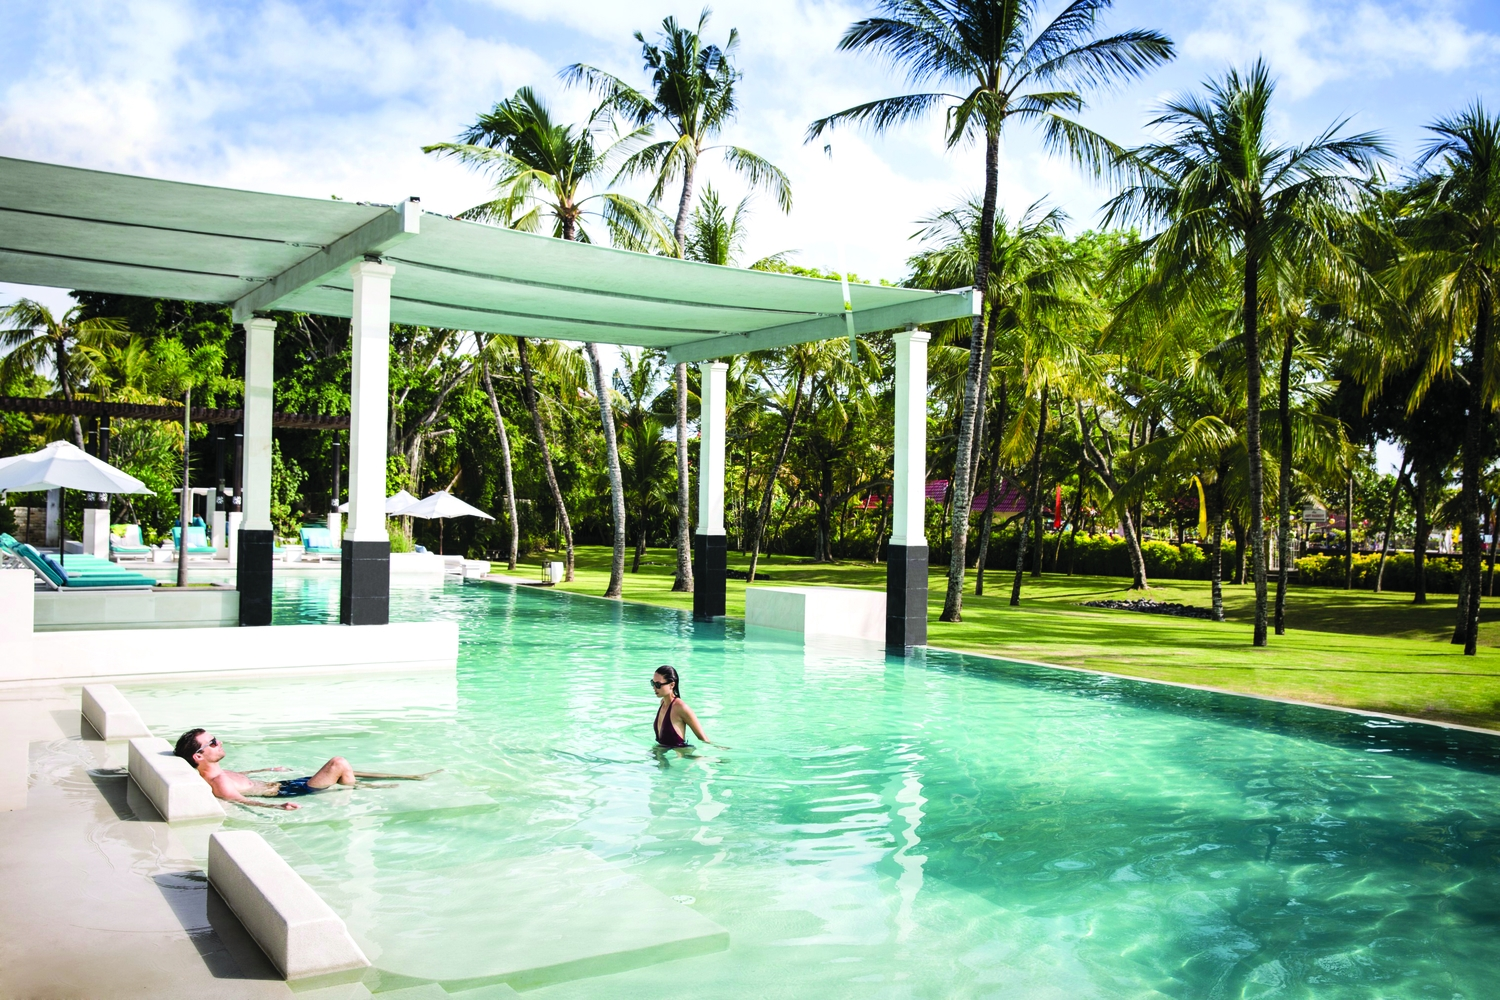 Club Med Bali: a self-contained and quaint village that is well manicured, lush, secure and efficiently run